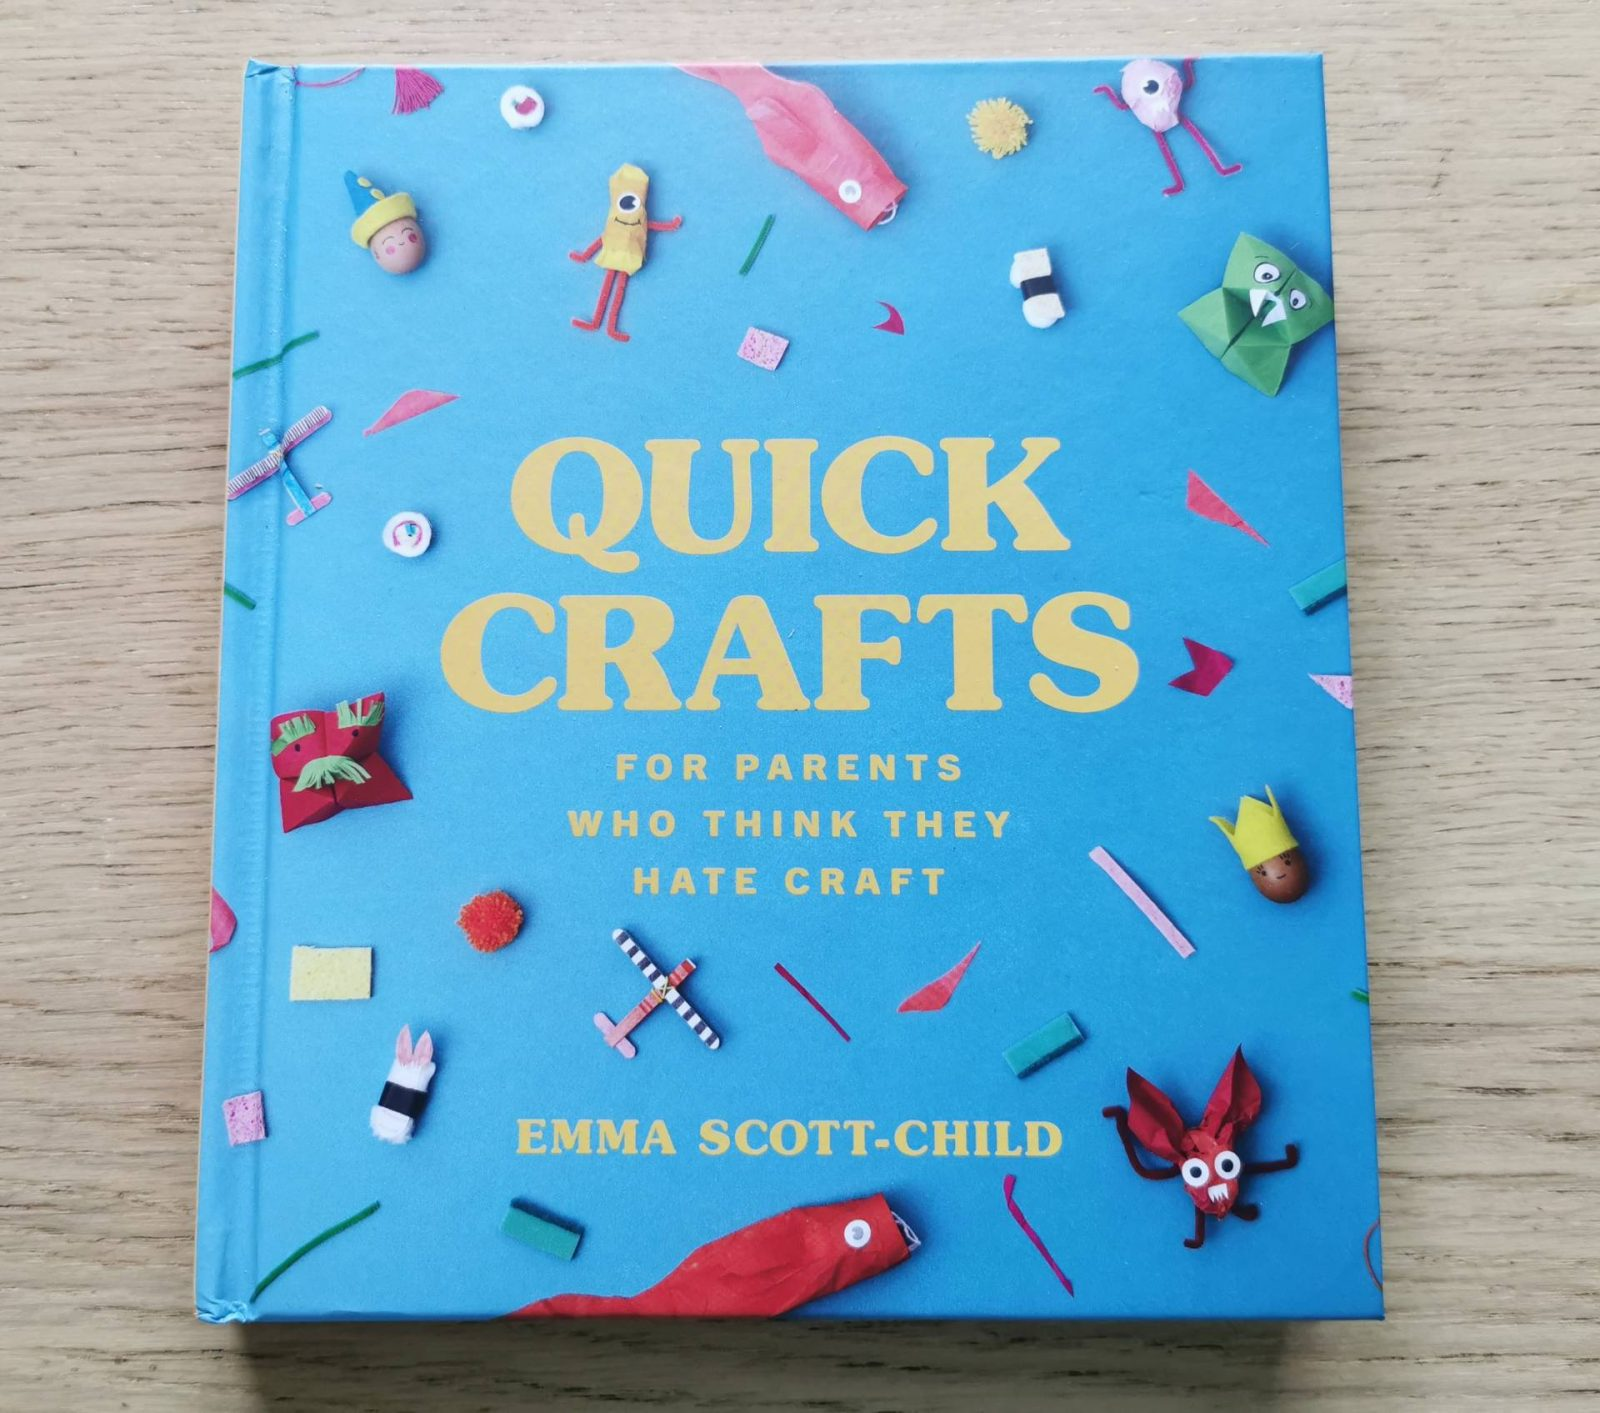 Quick Crafts for Parents Who Think They Hate Craft book review & Giveaway